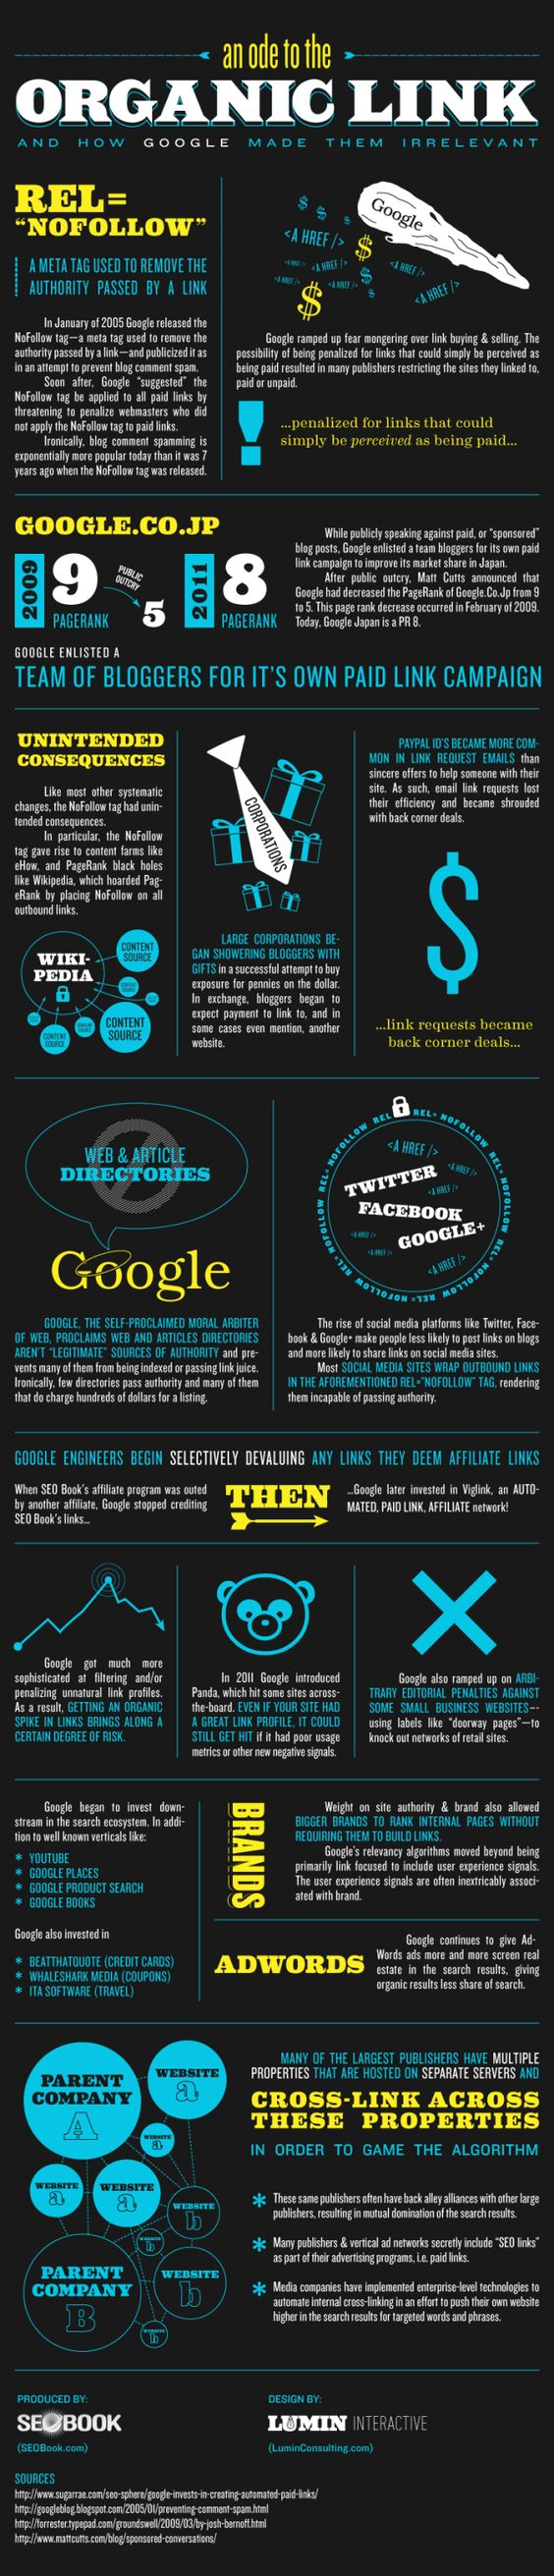 Decline of Organic Links - Infographic